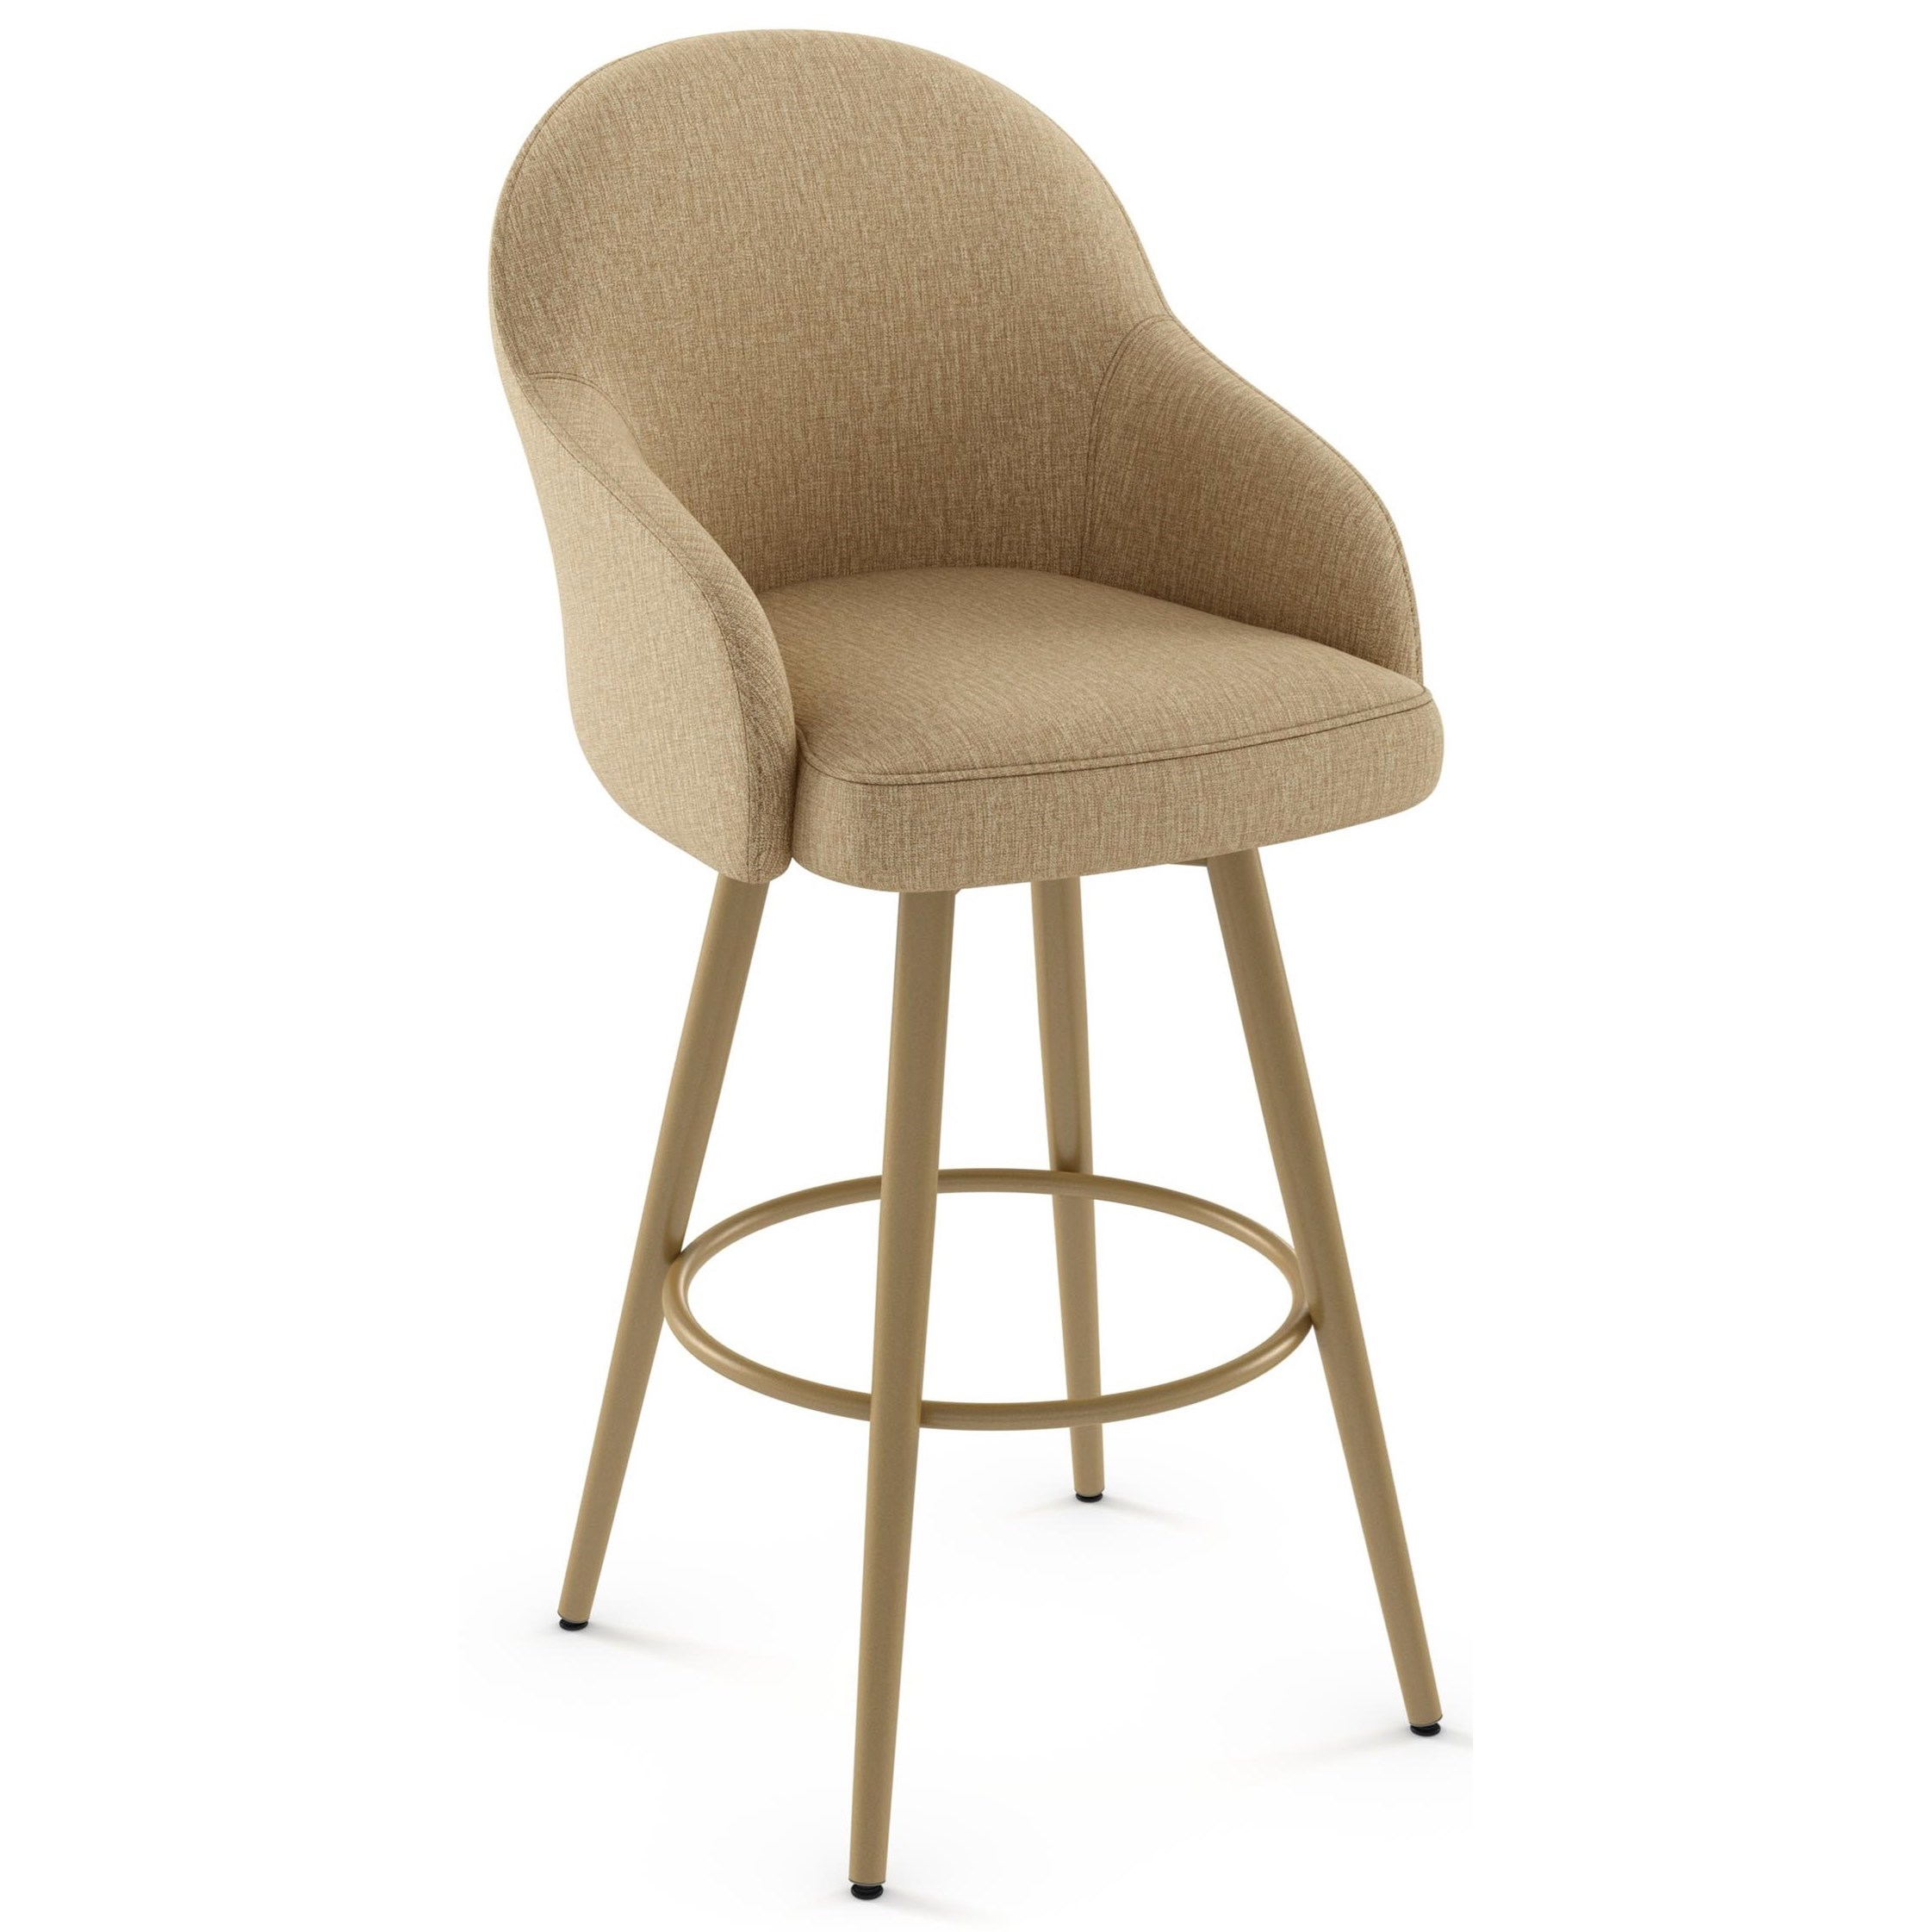 """Boudoir 30"""" Weston Swivel Stool by Amisco at SuperStore"""